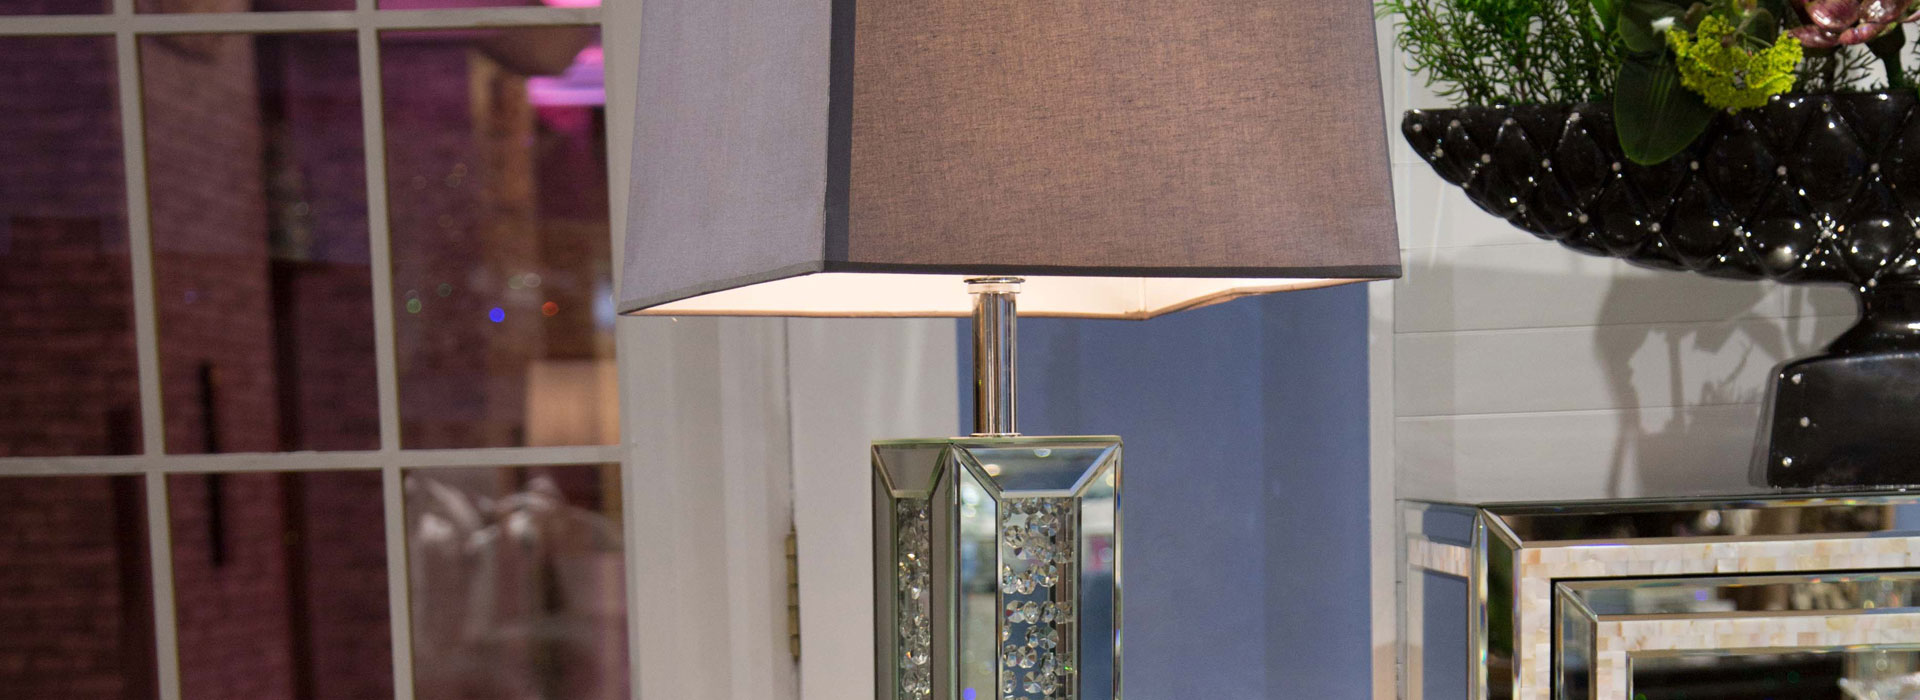 Michael amini furniture designs amini lighting can transform a room and chandelier lighting makes a dramatic statement michael amini lighting offers a diverse selection of lighting options aloadofball Image collections